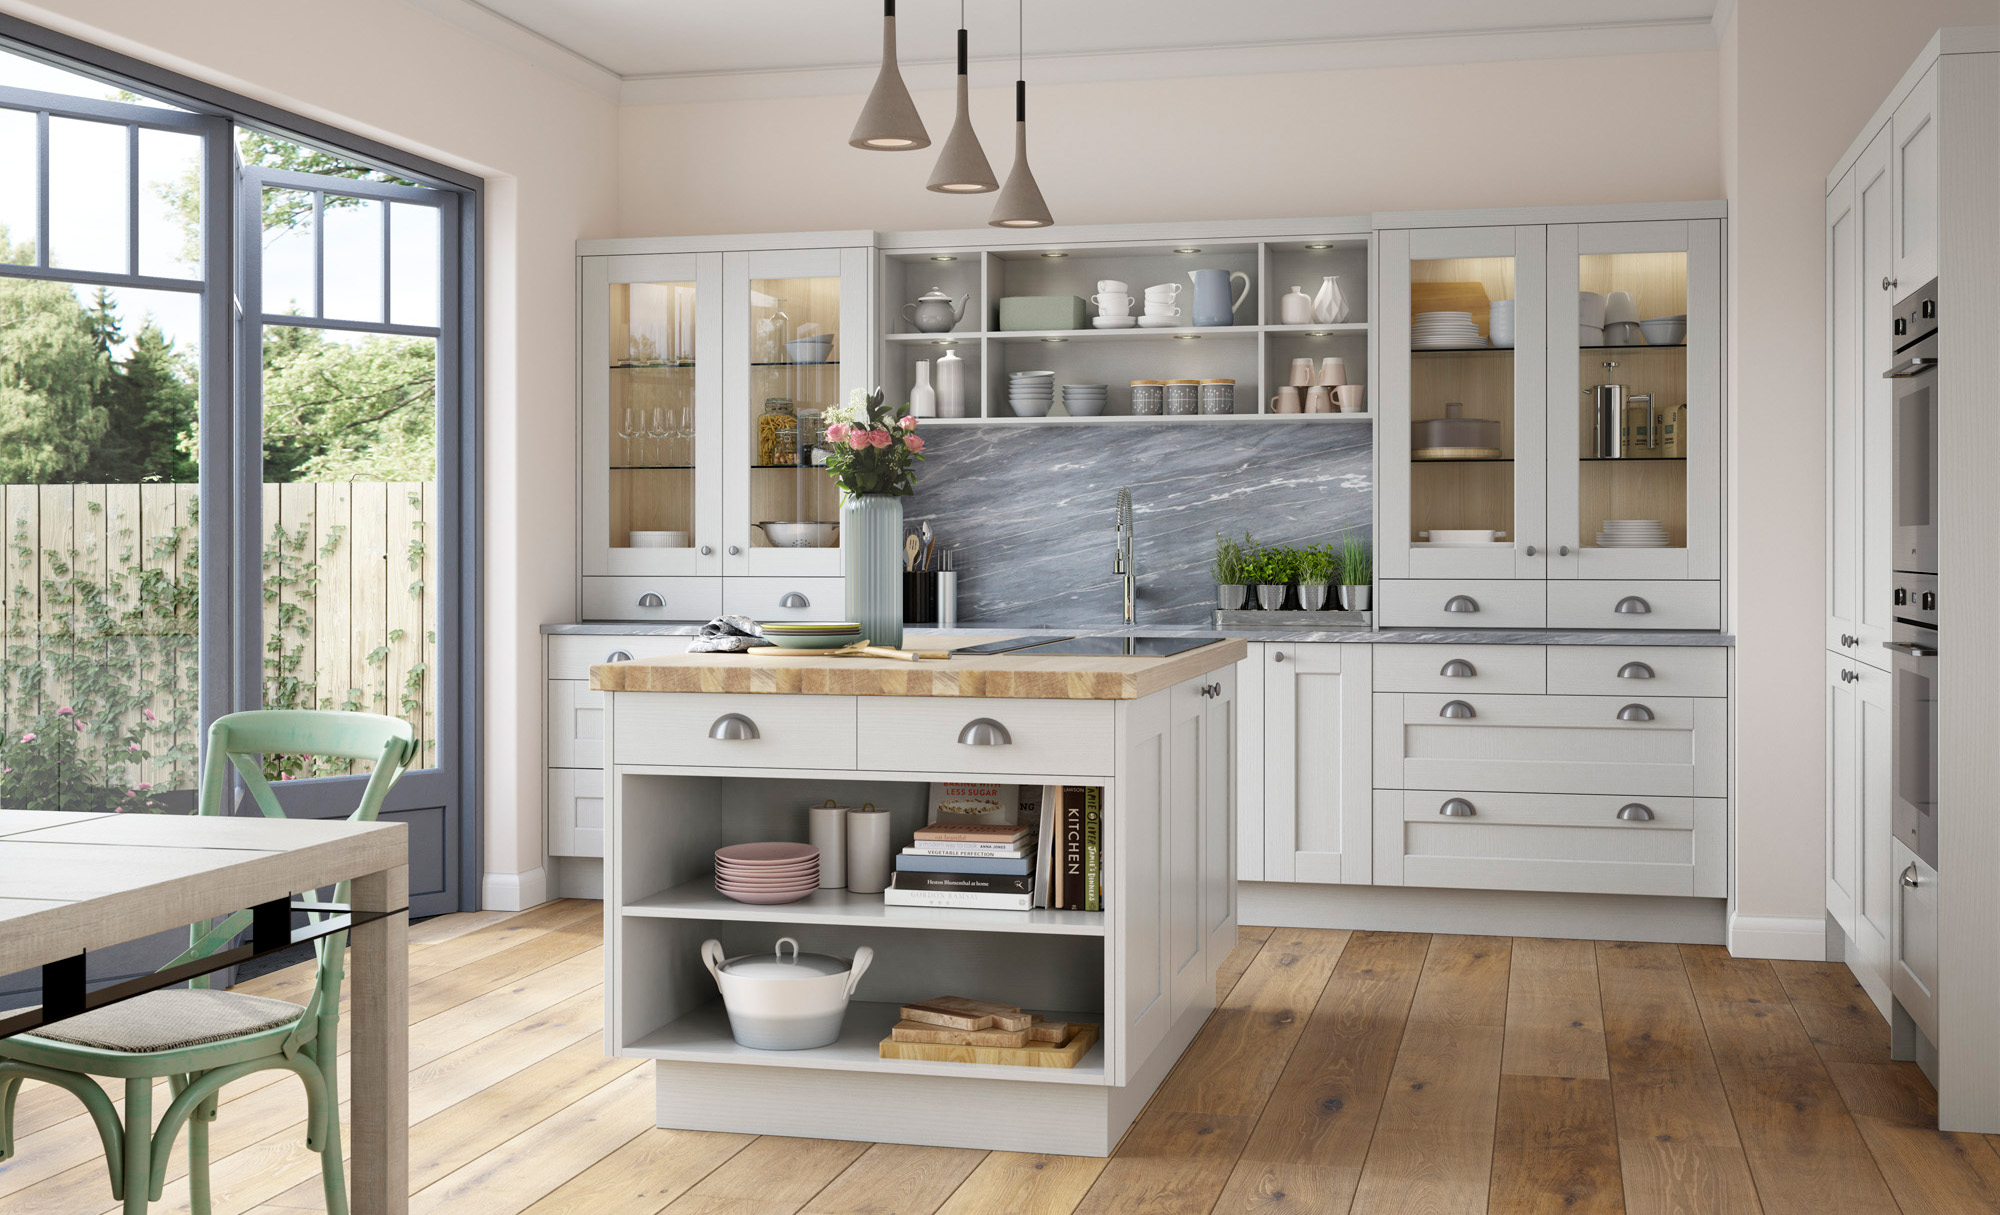 Kensington classic light grey kitchen